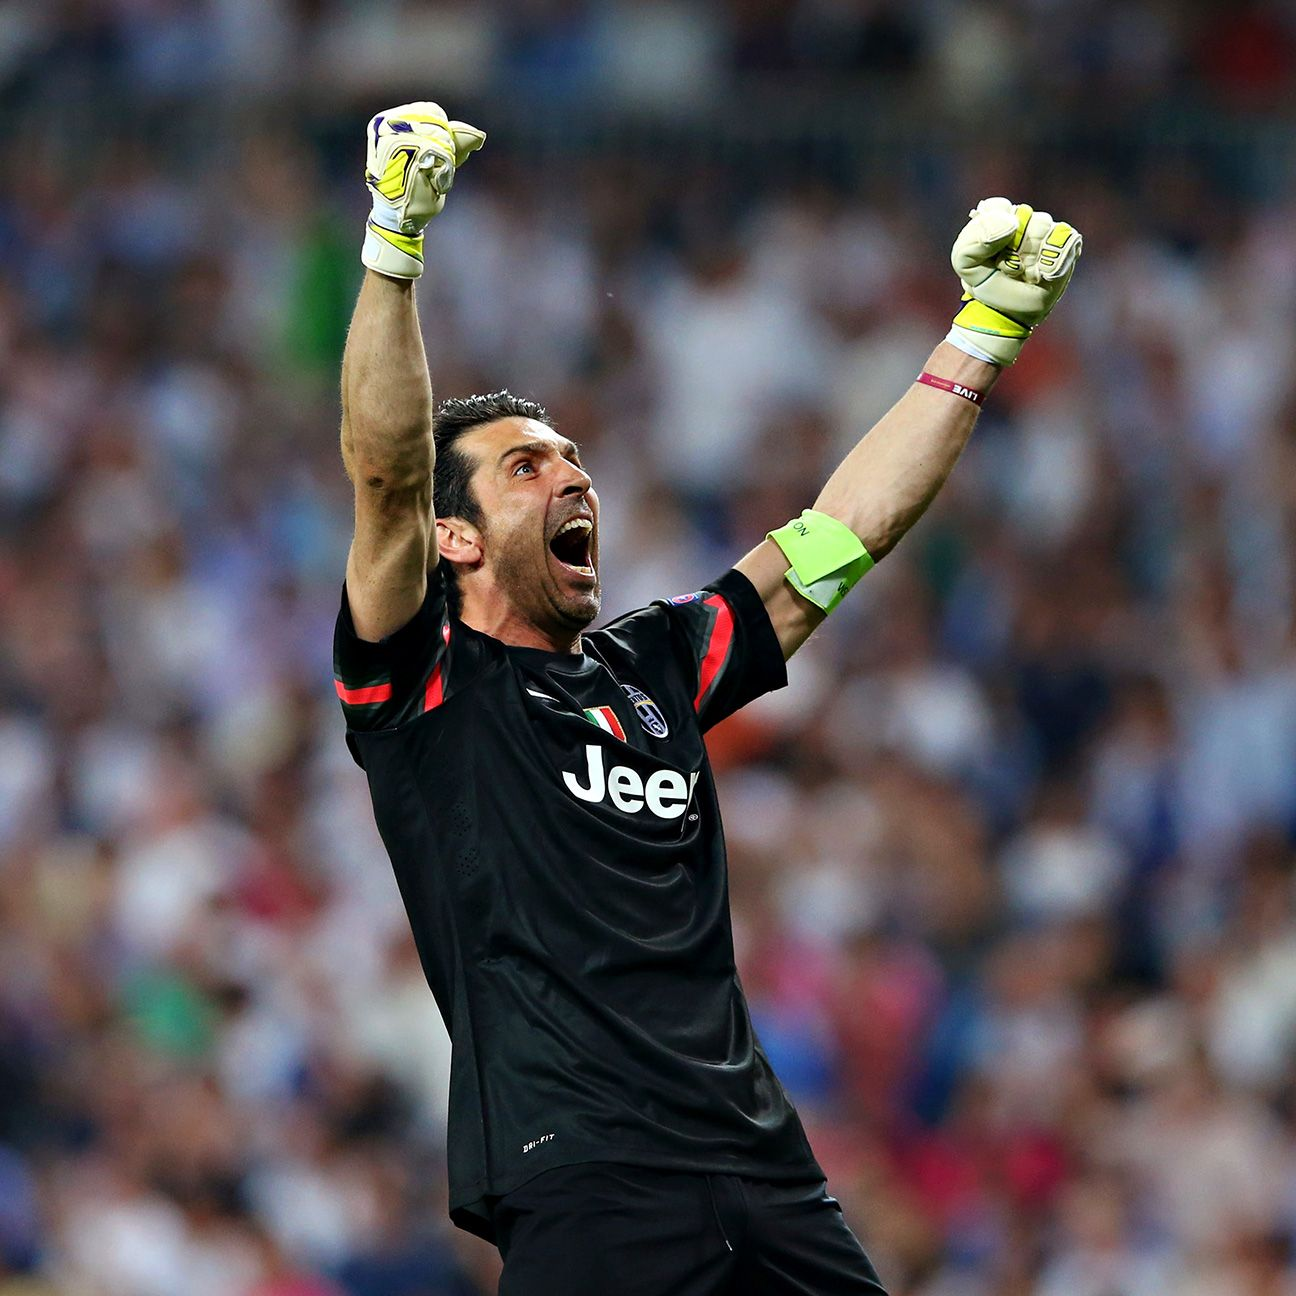 Should matters be settled with penalties, Gianluigi Buffon's experience would be a boost for Juventus.